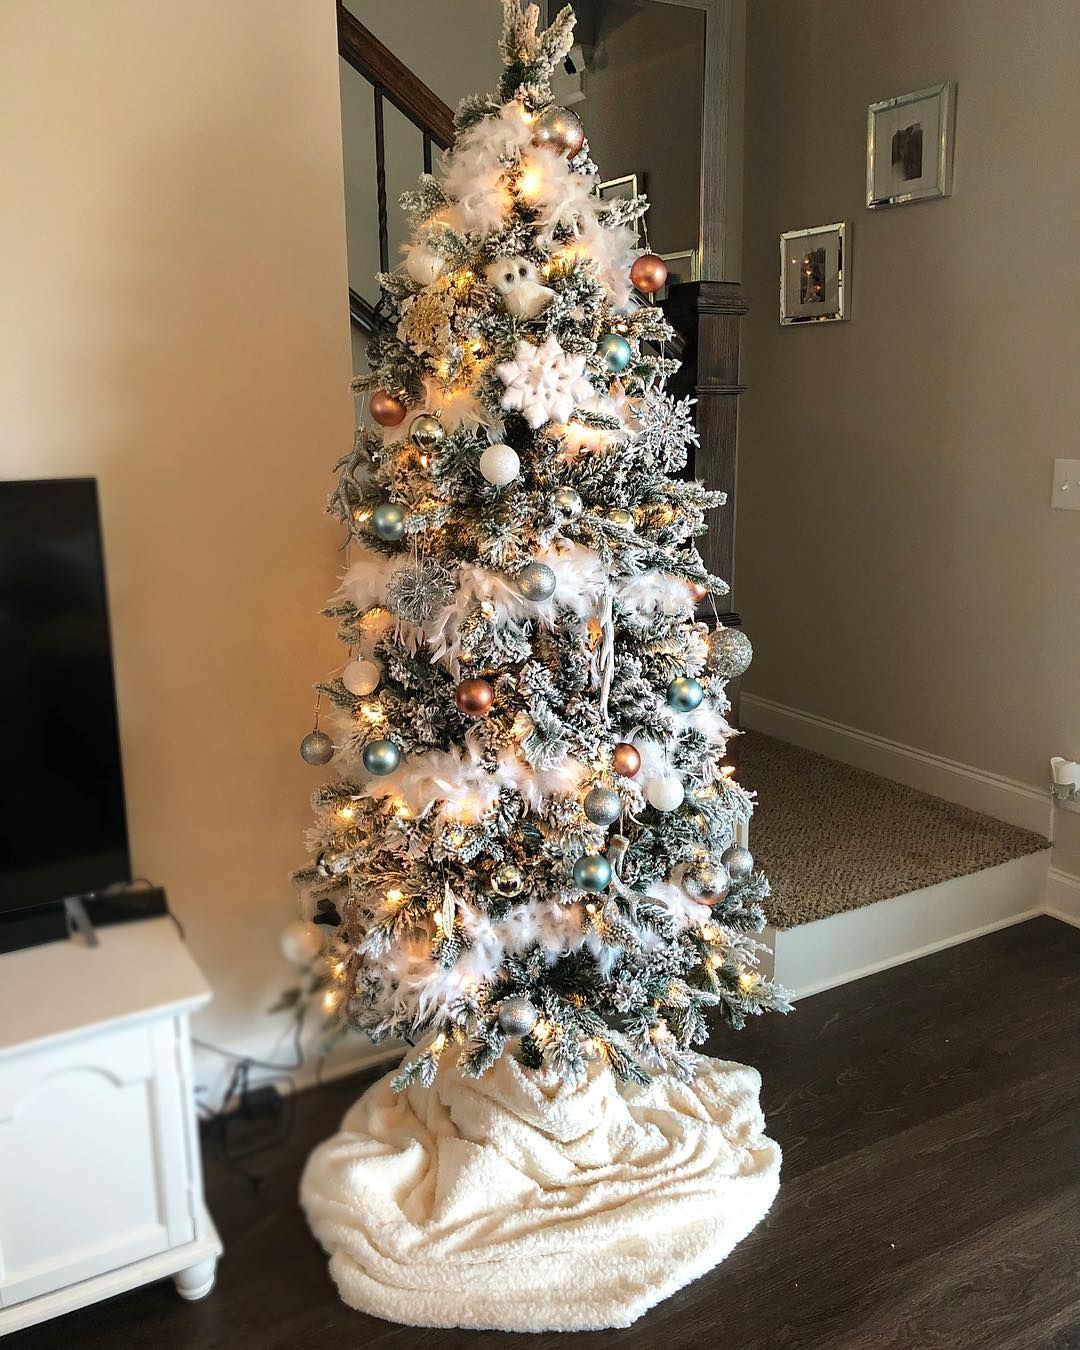 I Really Wanted A Flocked Tree This Year I Found This One On Sale Score Christ Christmas Tree Decorations Christmas Tree Holiday Decor